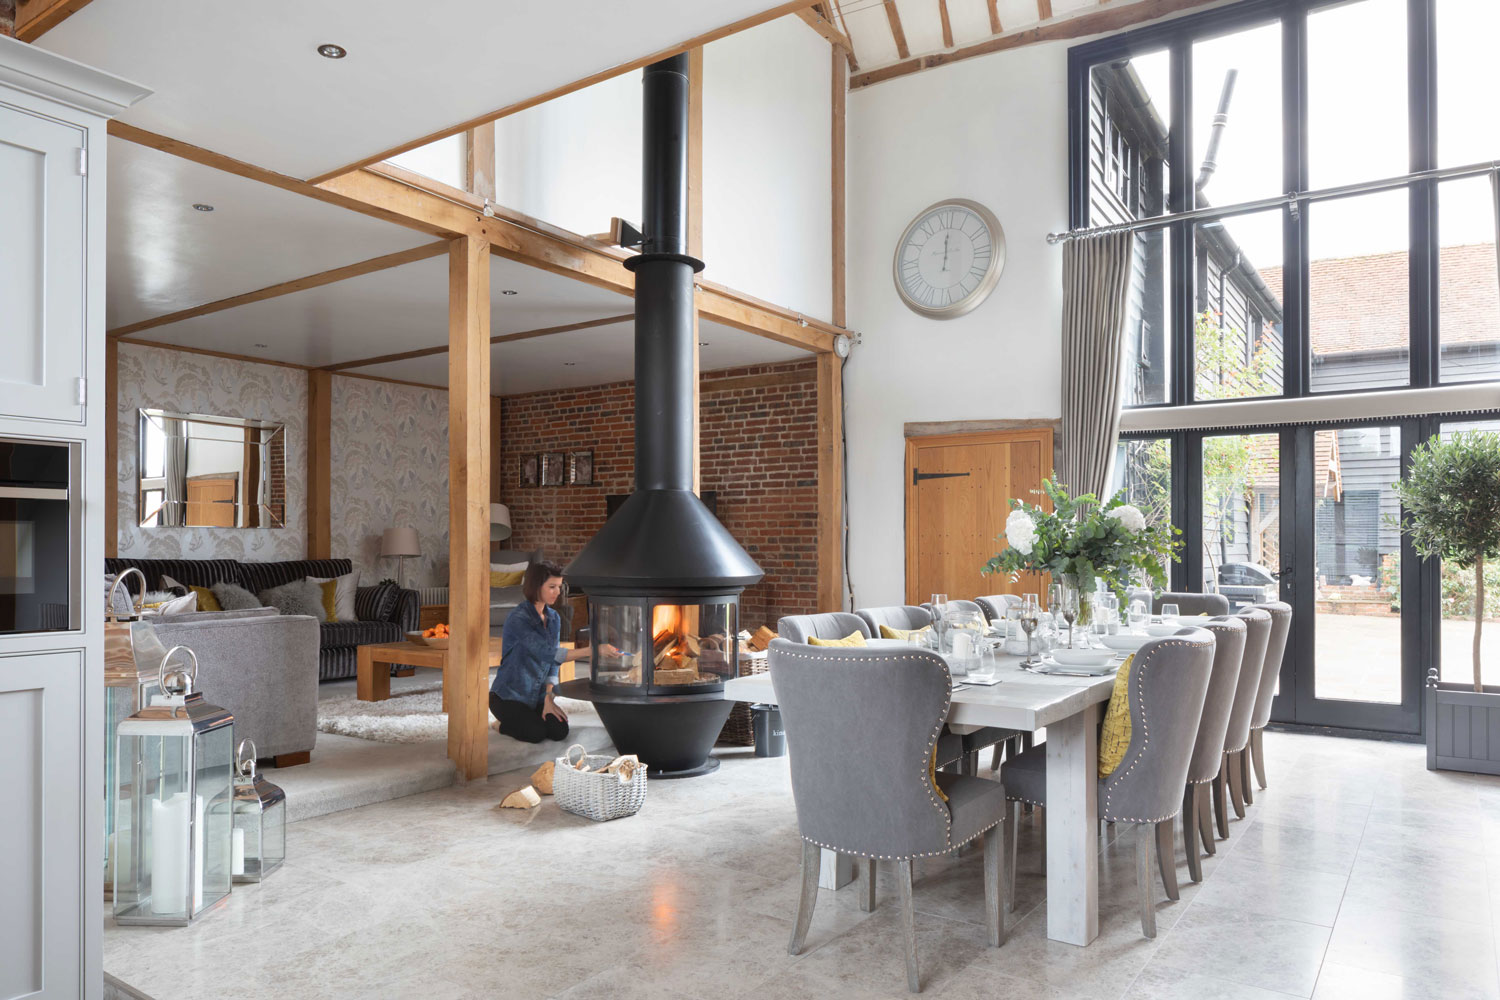 Renovated barn conversion featuring inside and on the front cover of the January 2019 issue of EKBB magazine.    Photo by Paul Craig   Styling by Design By Portia